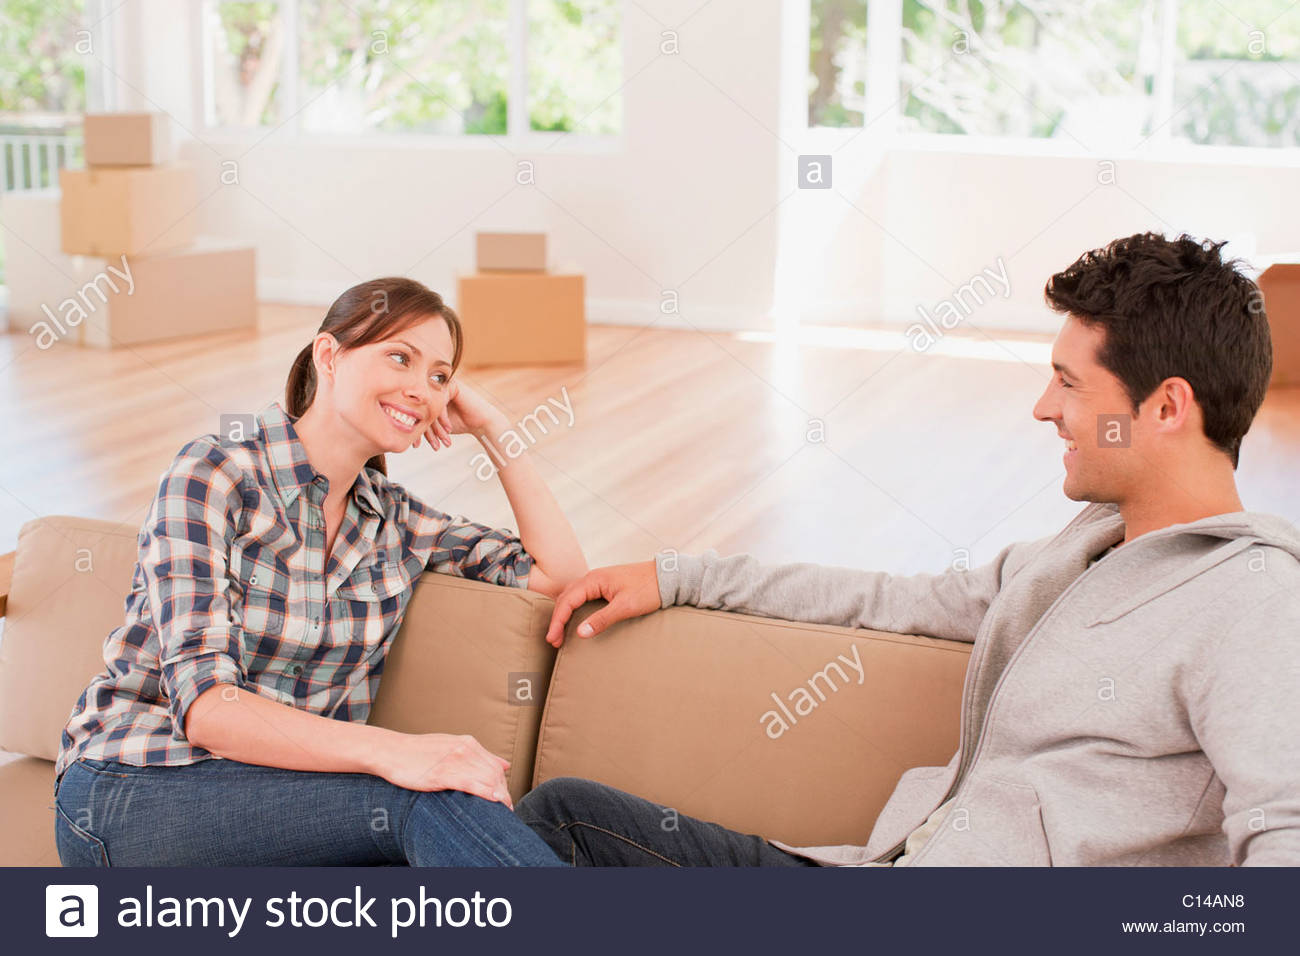 Couple relaxing on sofa in new house - Stock Image